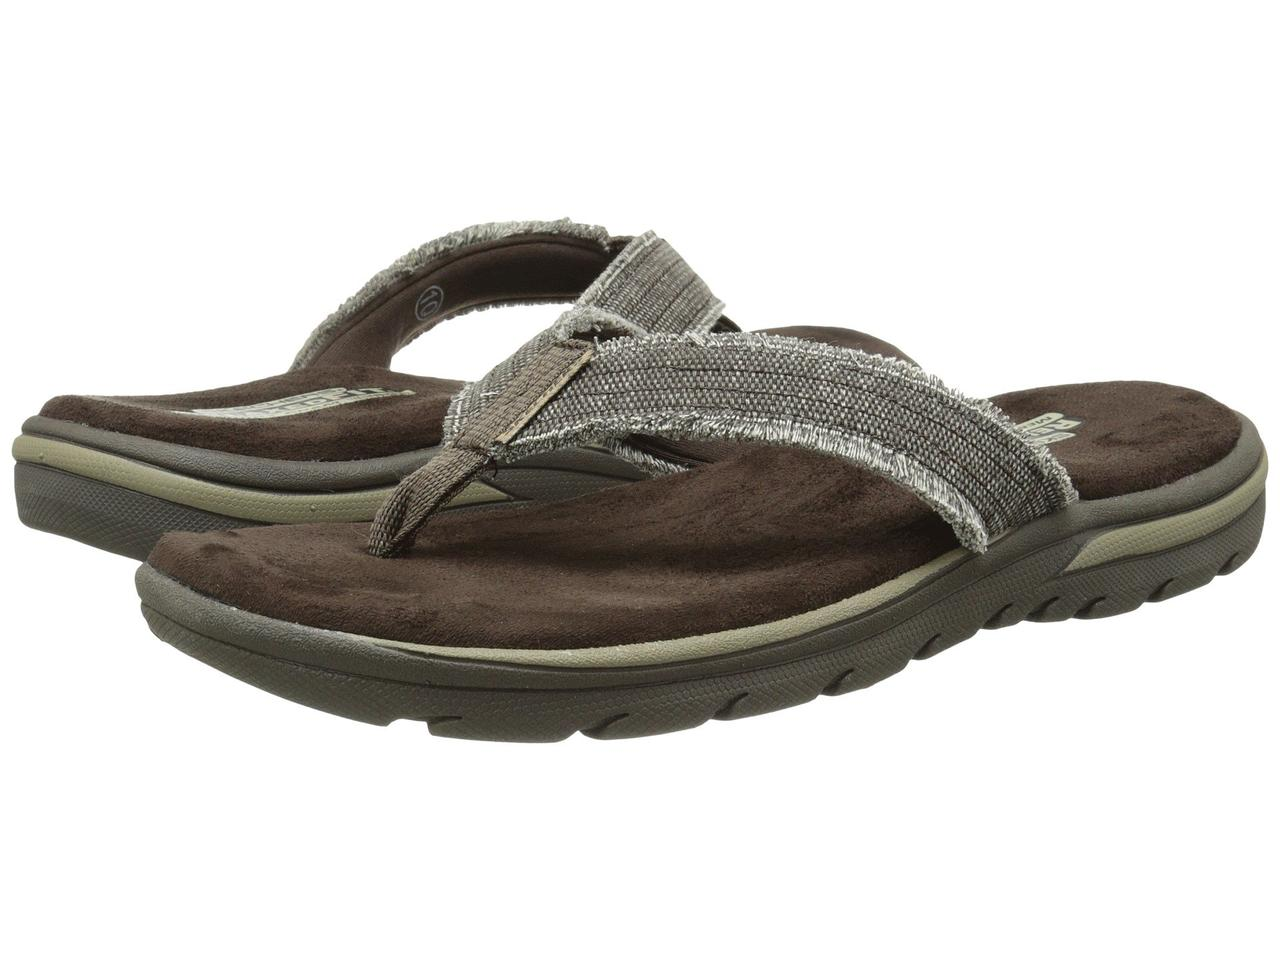 Сандали Вьетнамки (Оригинал) SKECHERS Relaxed Fit 360 Supreme - Bosnia  Chocolate 78f7b334485